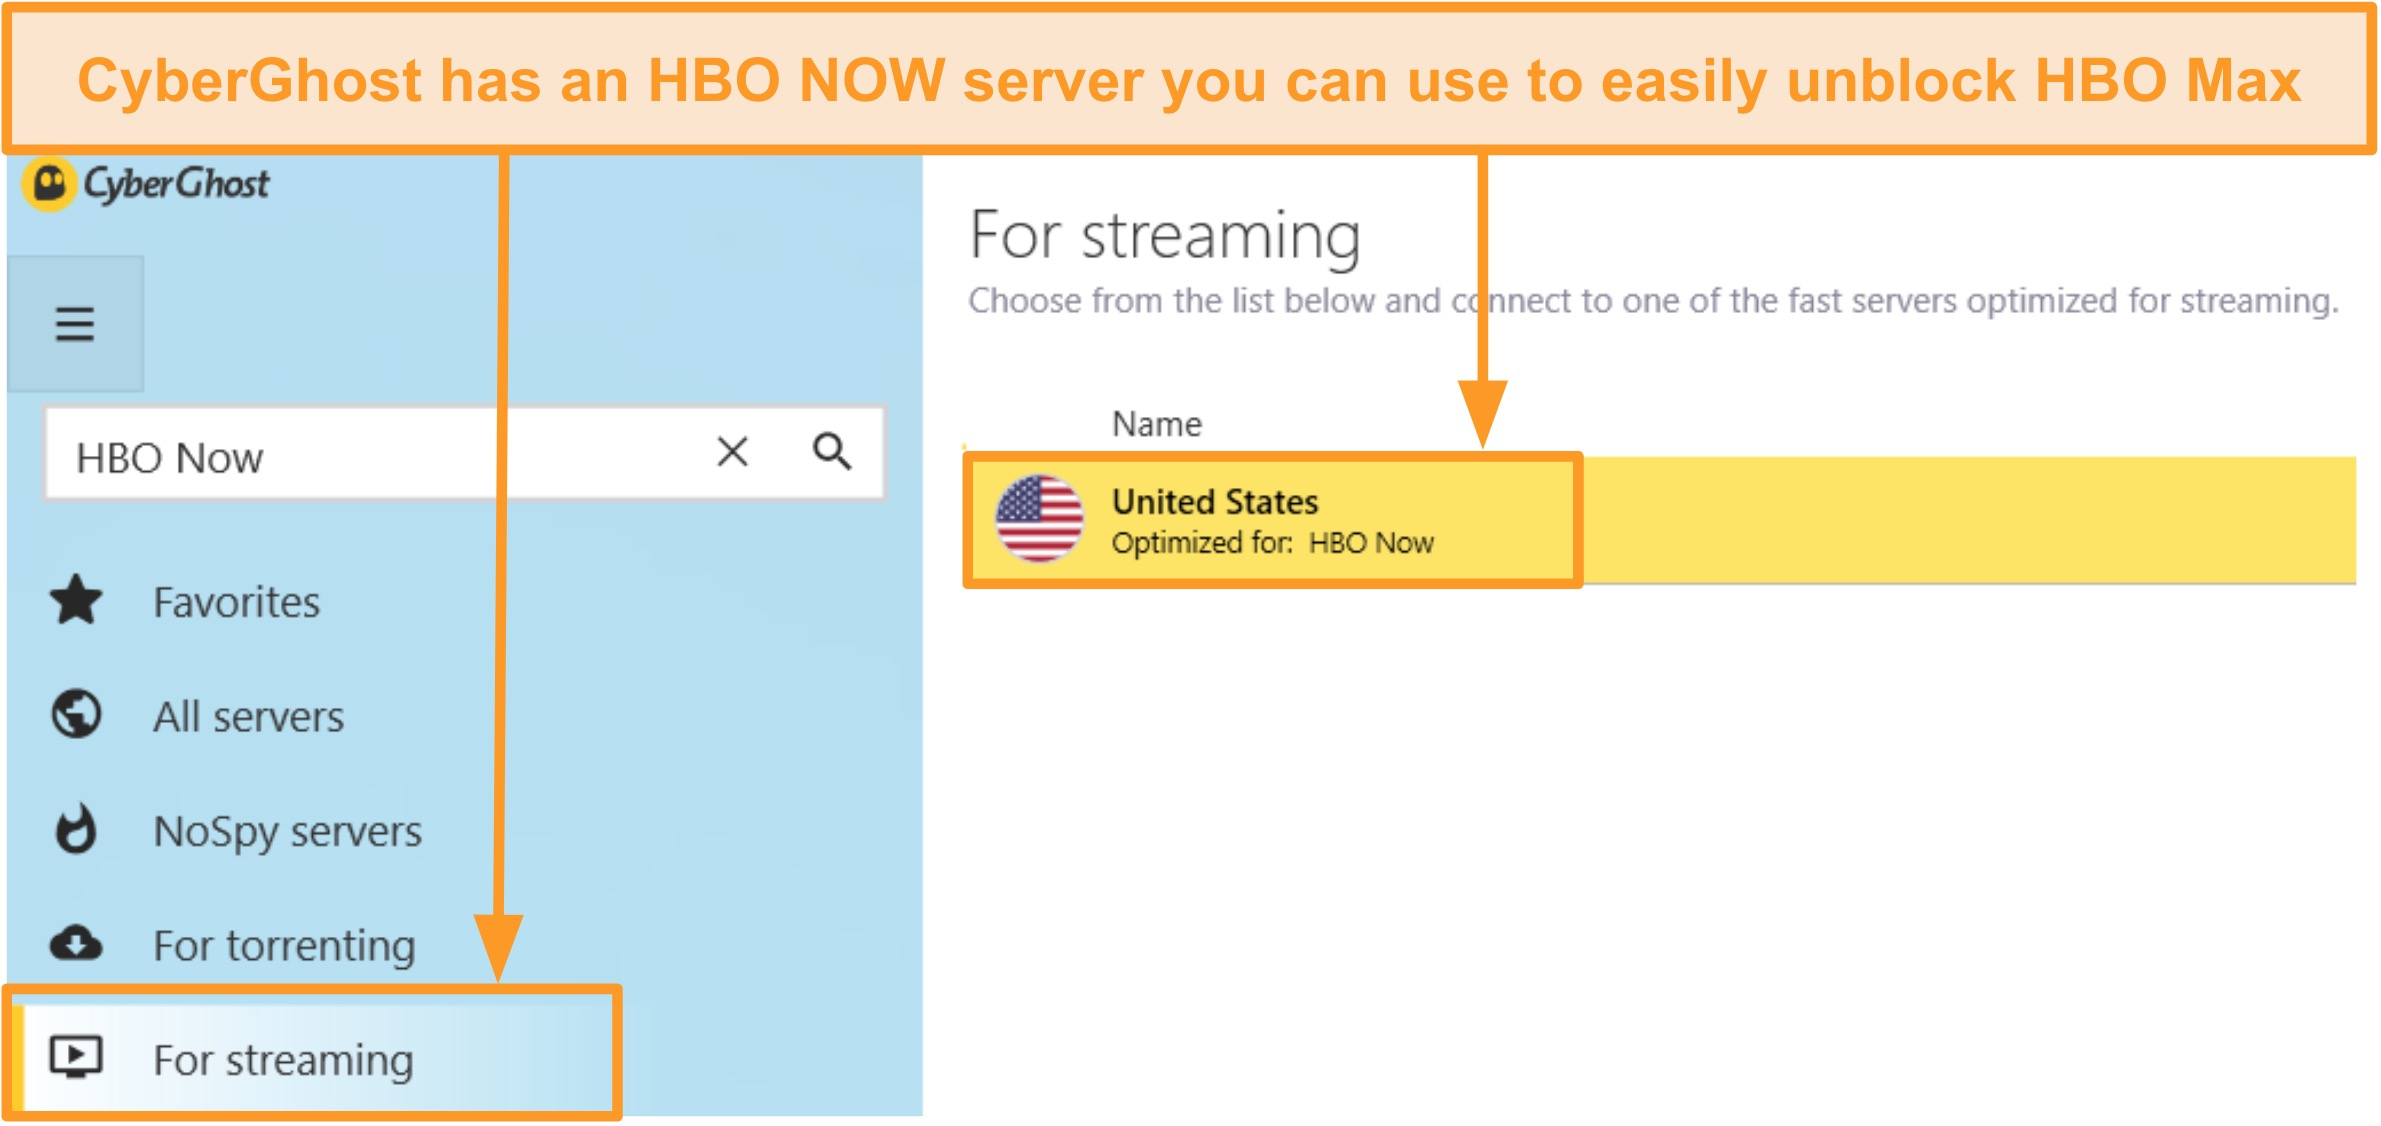 Screenshot of CyberGhost's HBO Now server that also unblocks HBO Max